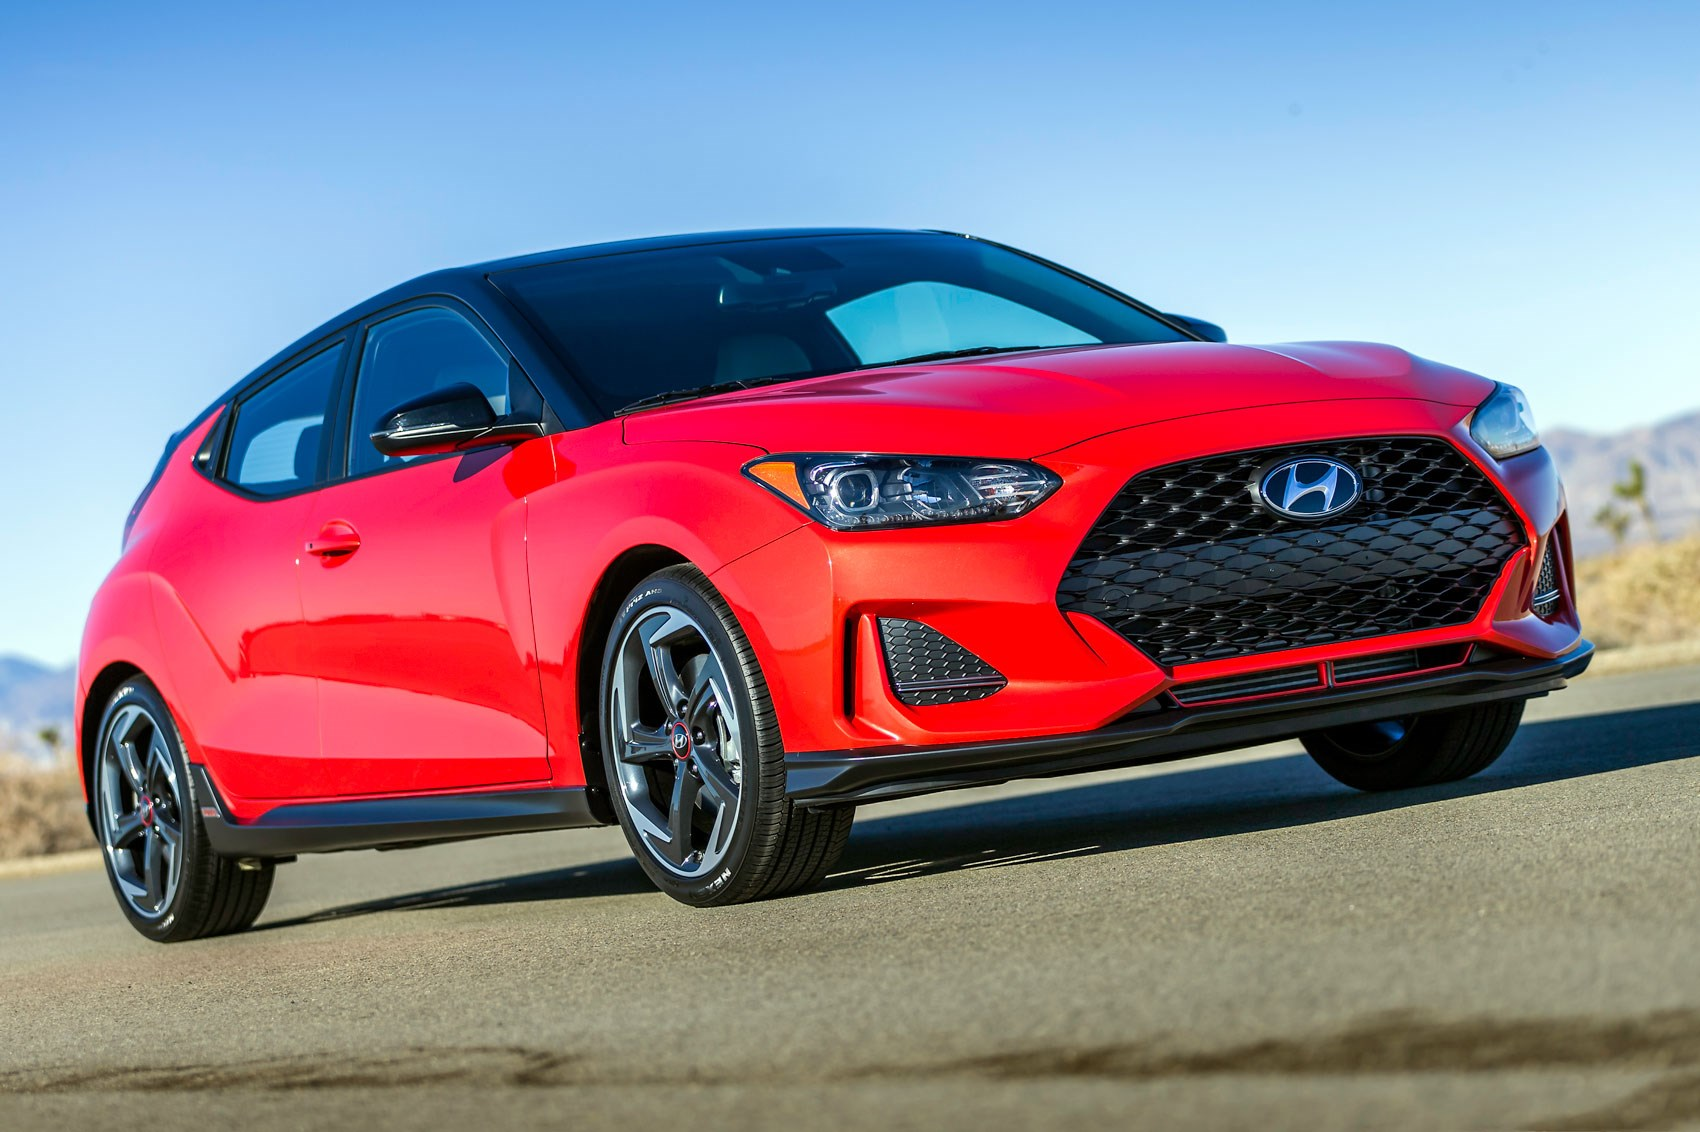 new hyundai veloster 2018 new coupe blasts into naias 2018 with hot n version car magazine. Black Bedroom Furniture Sets. Home Design Ideas